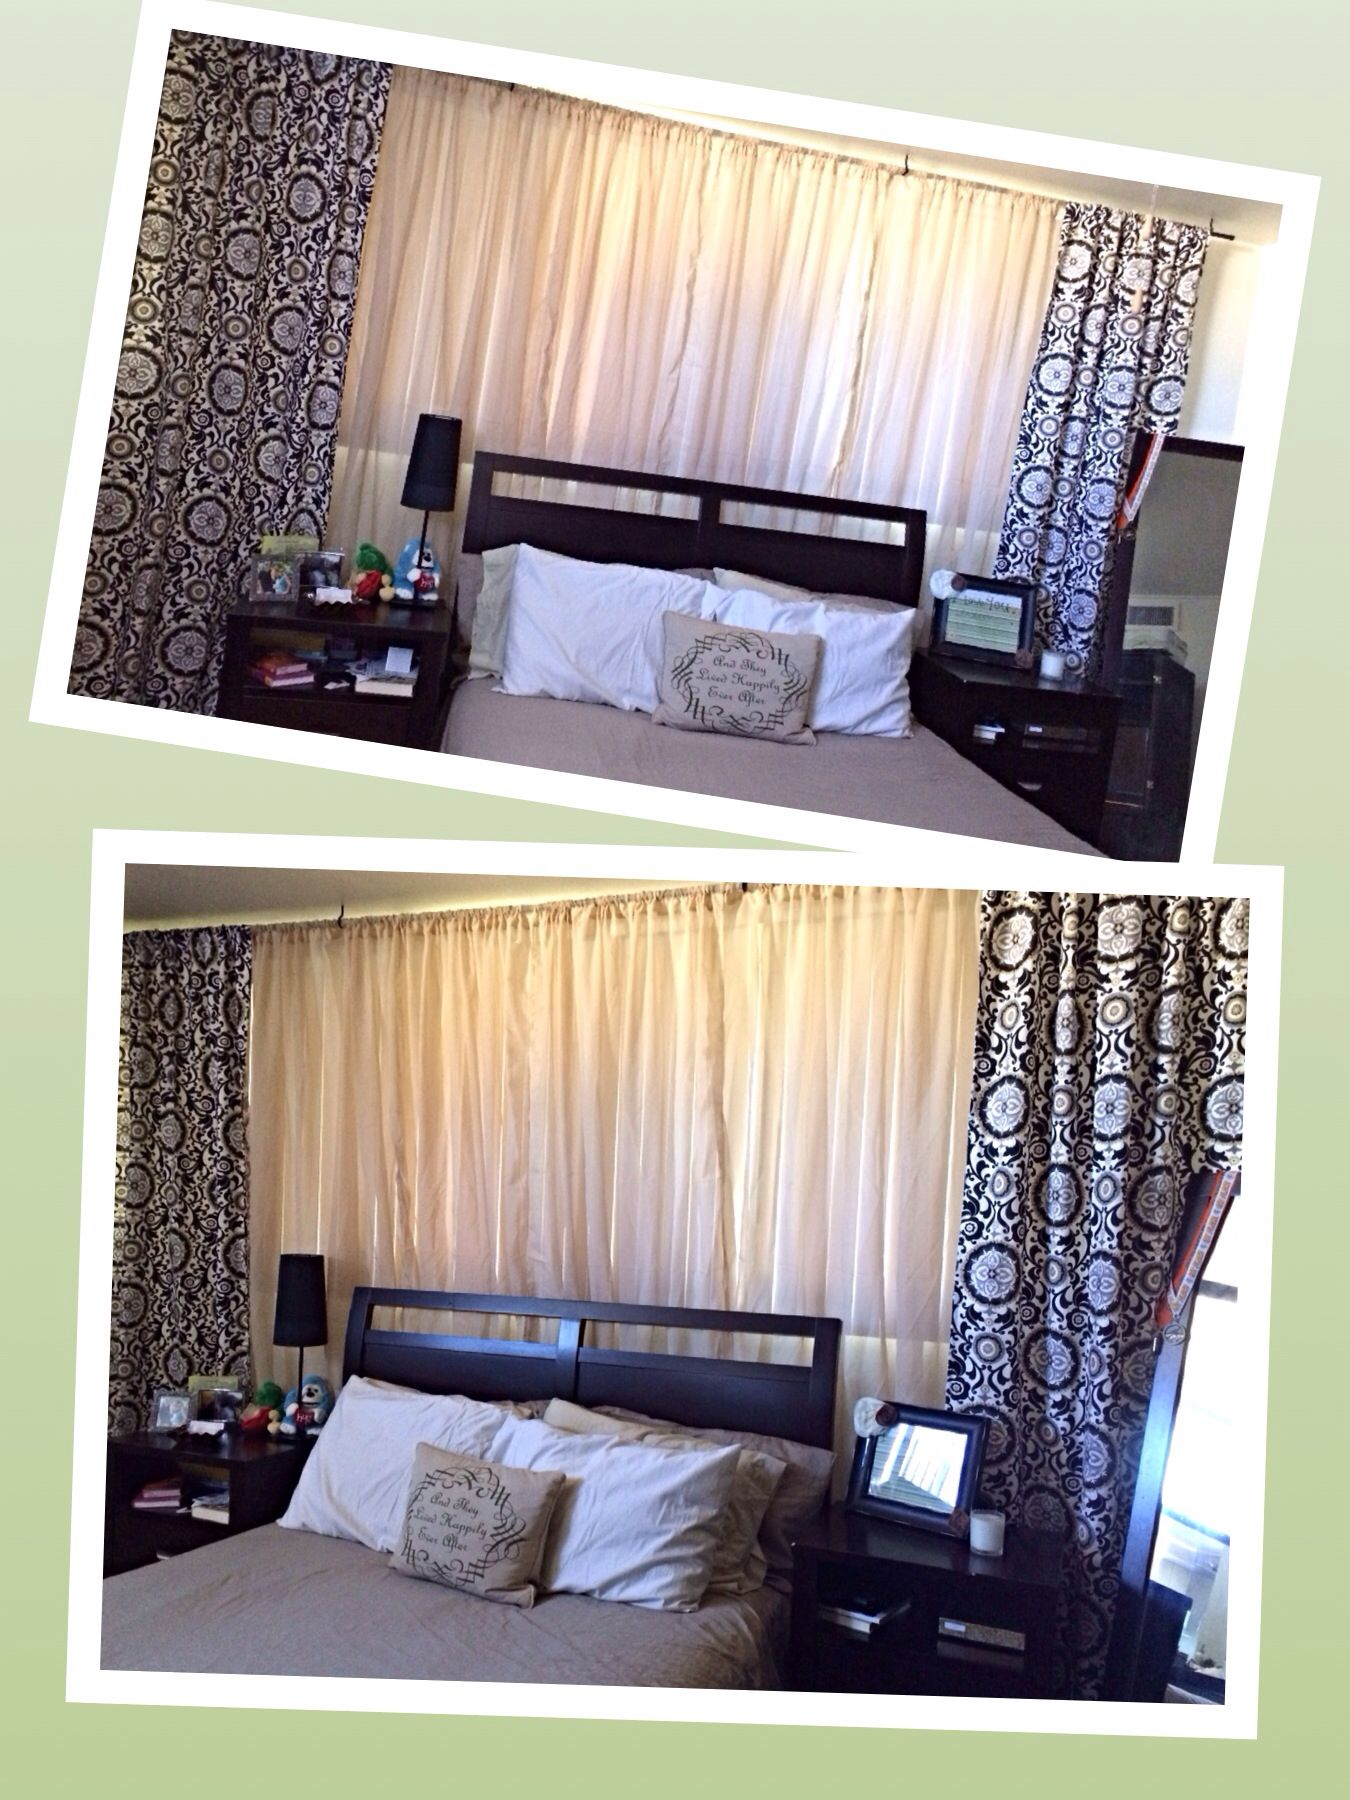 Bed with window behind it  diy curtains behind bed in master to cover wall full of windows